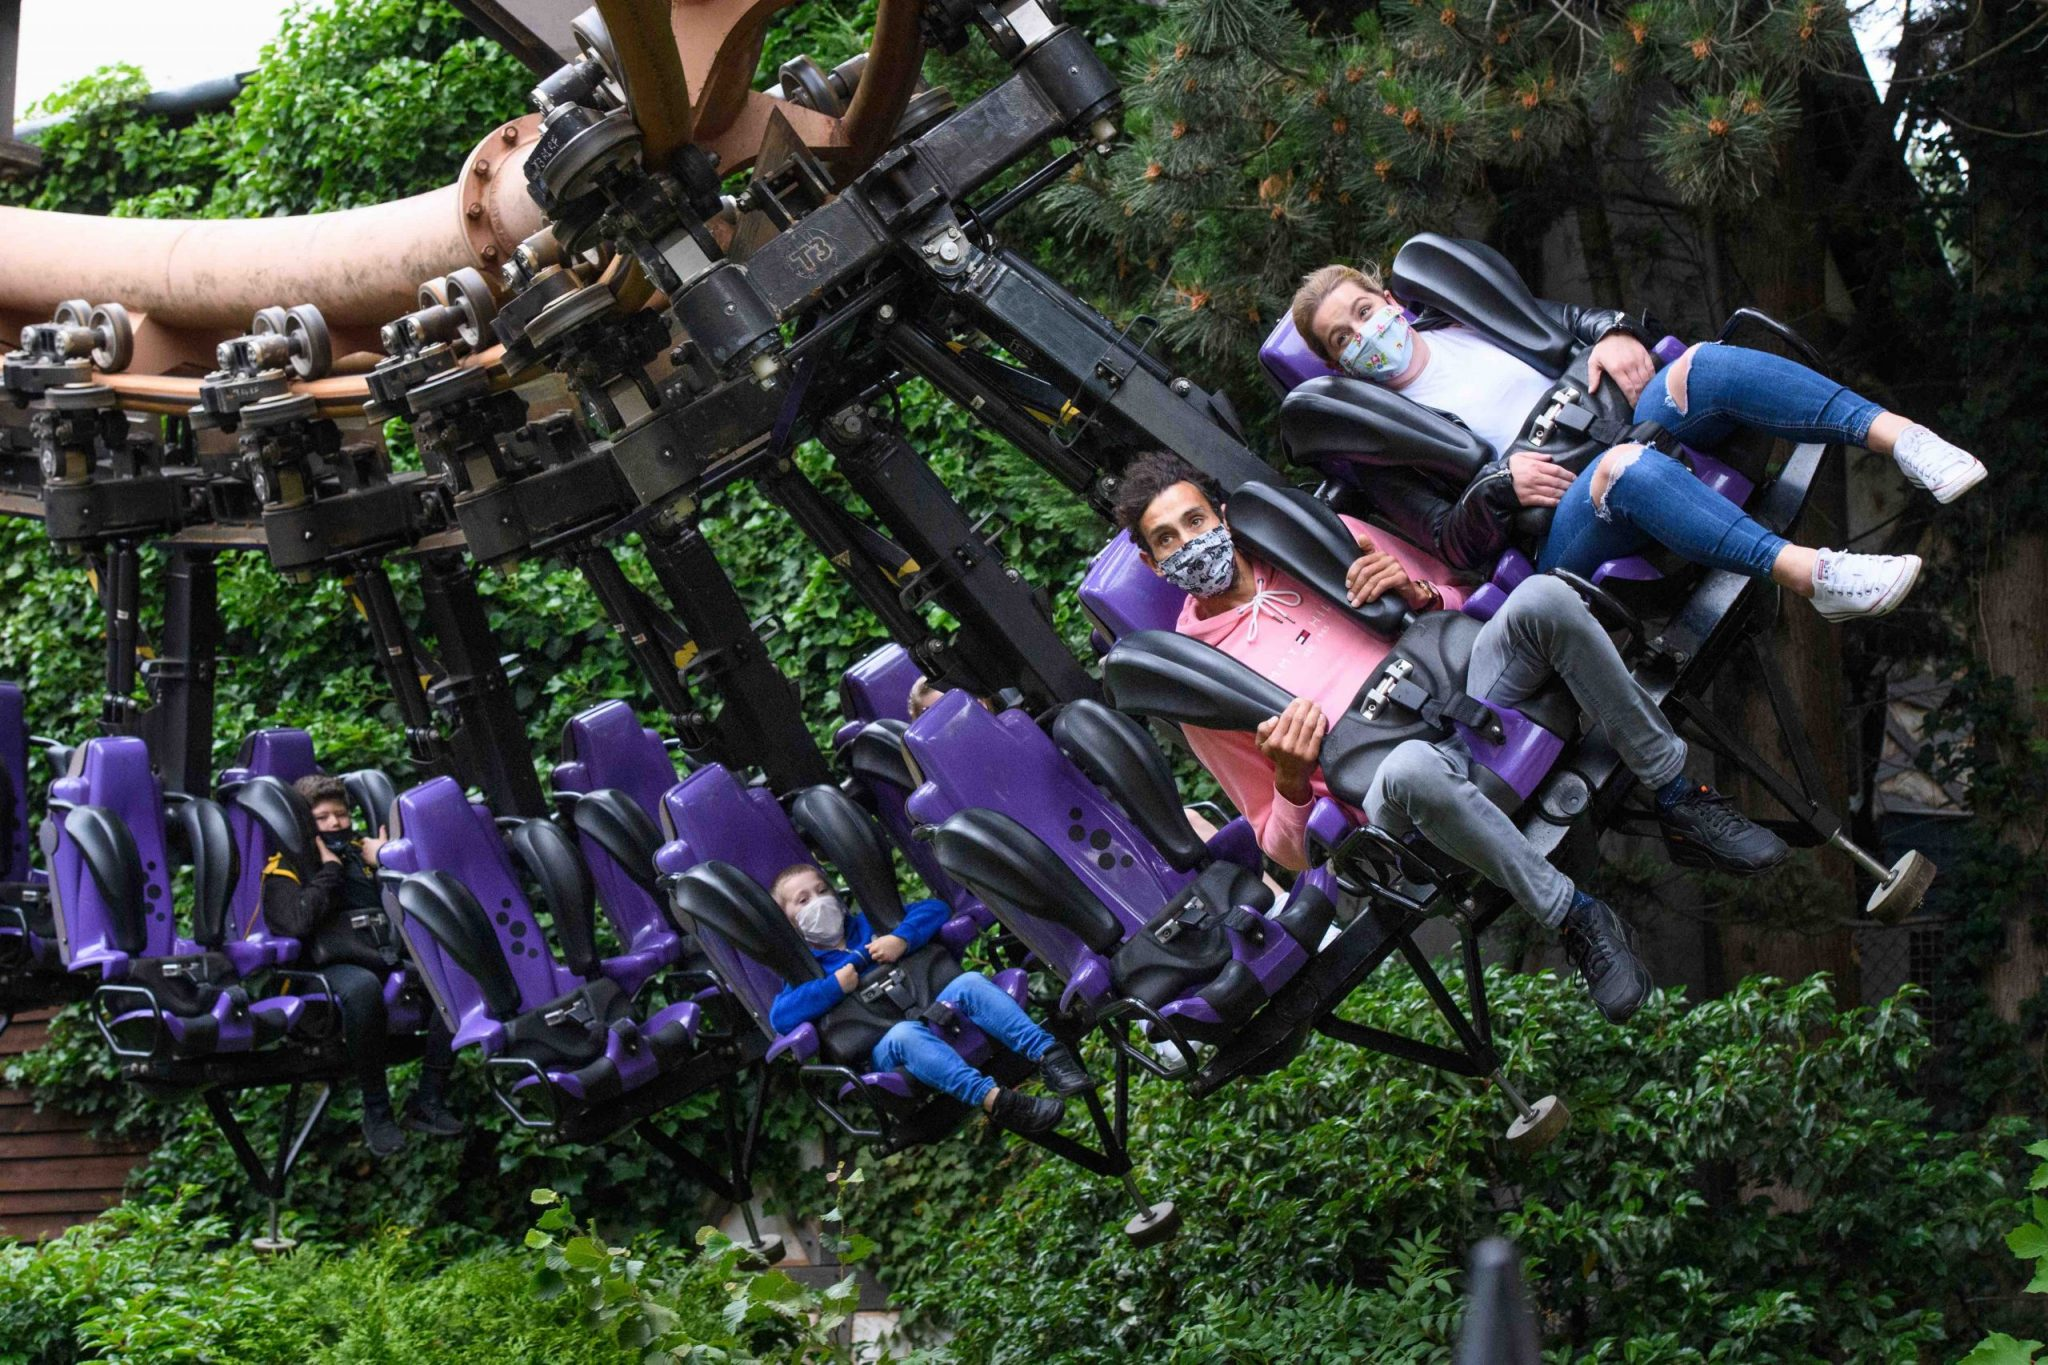 Chessington World of Adventures resort re-opens its Theme Park and Hotels, for the first time since closing in March.